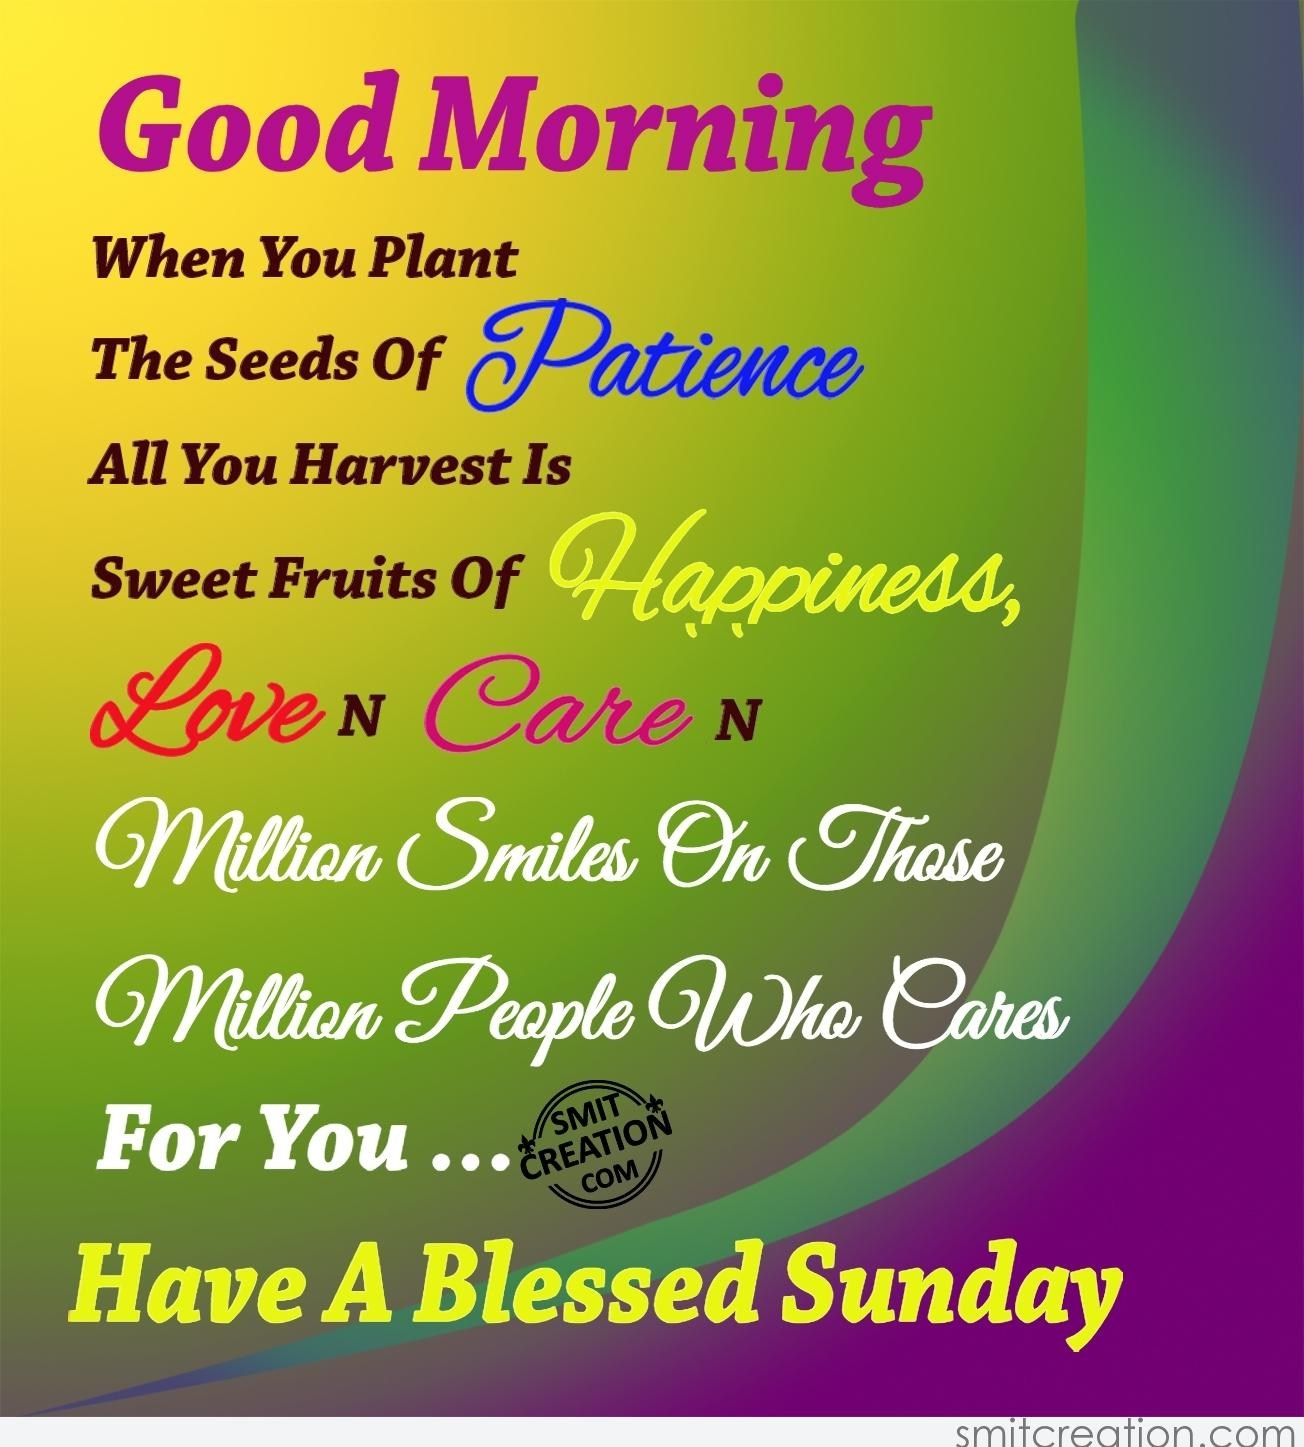 Good Morning Have A Blessed Sunday Smitcreationcom